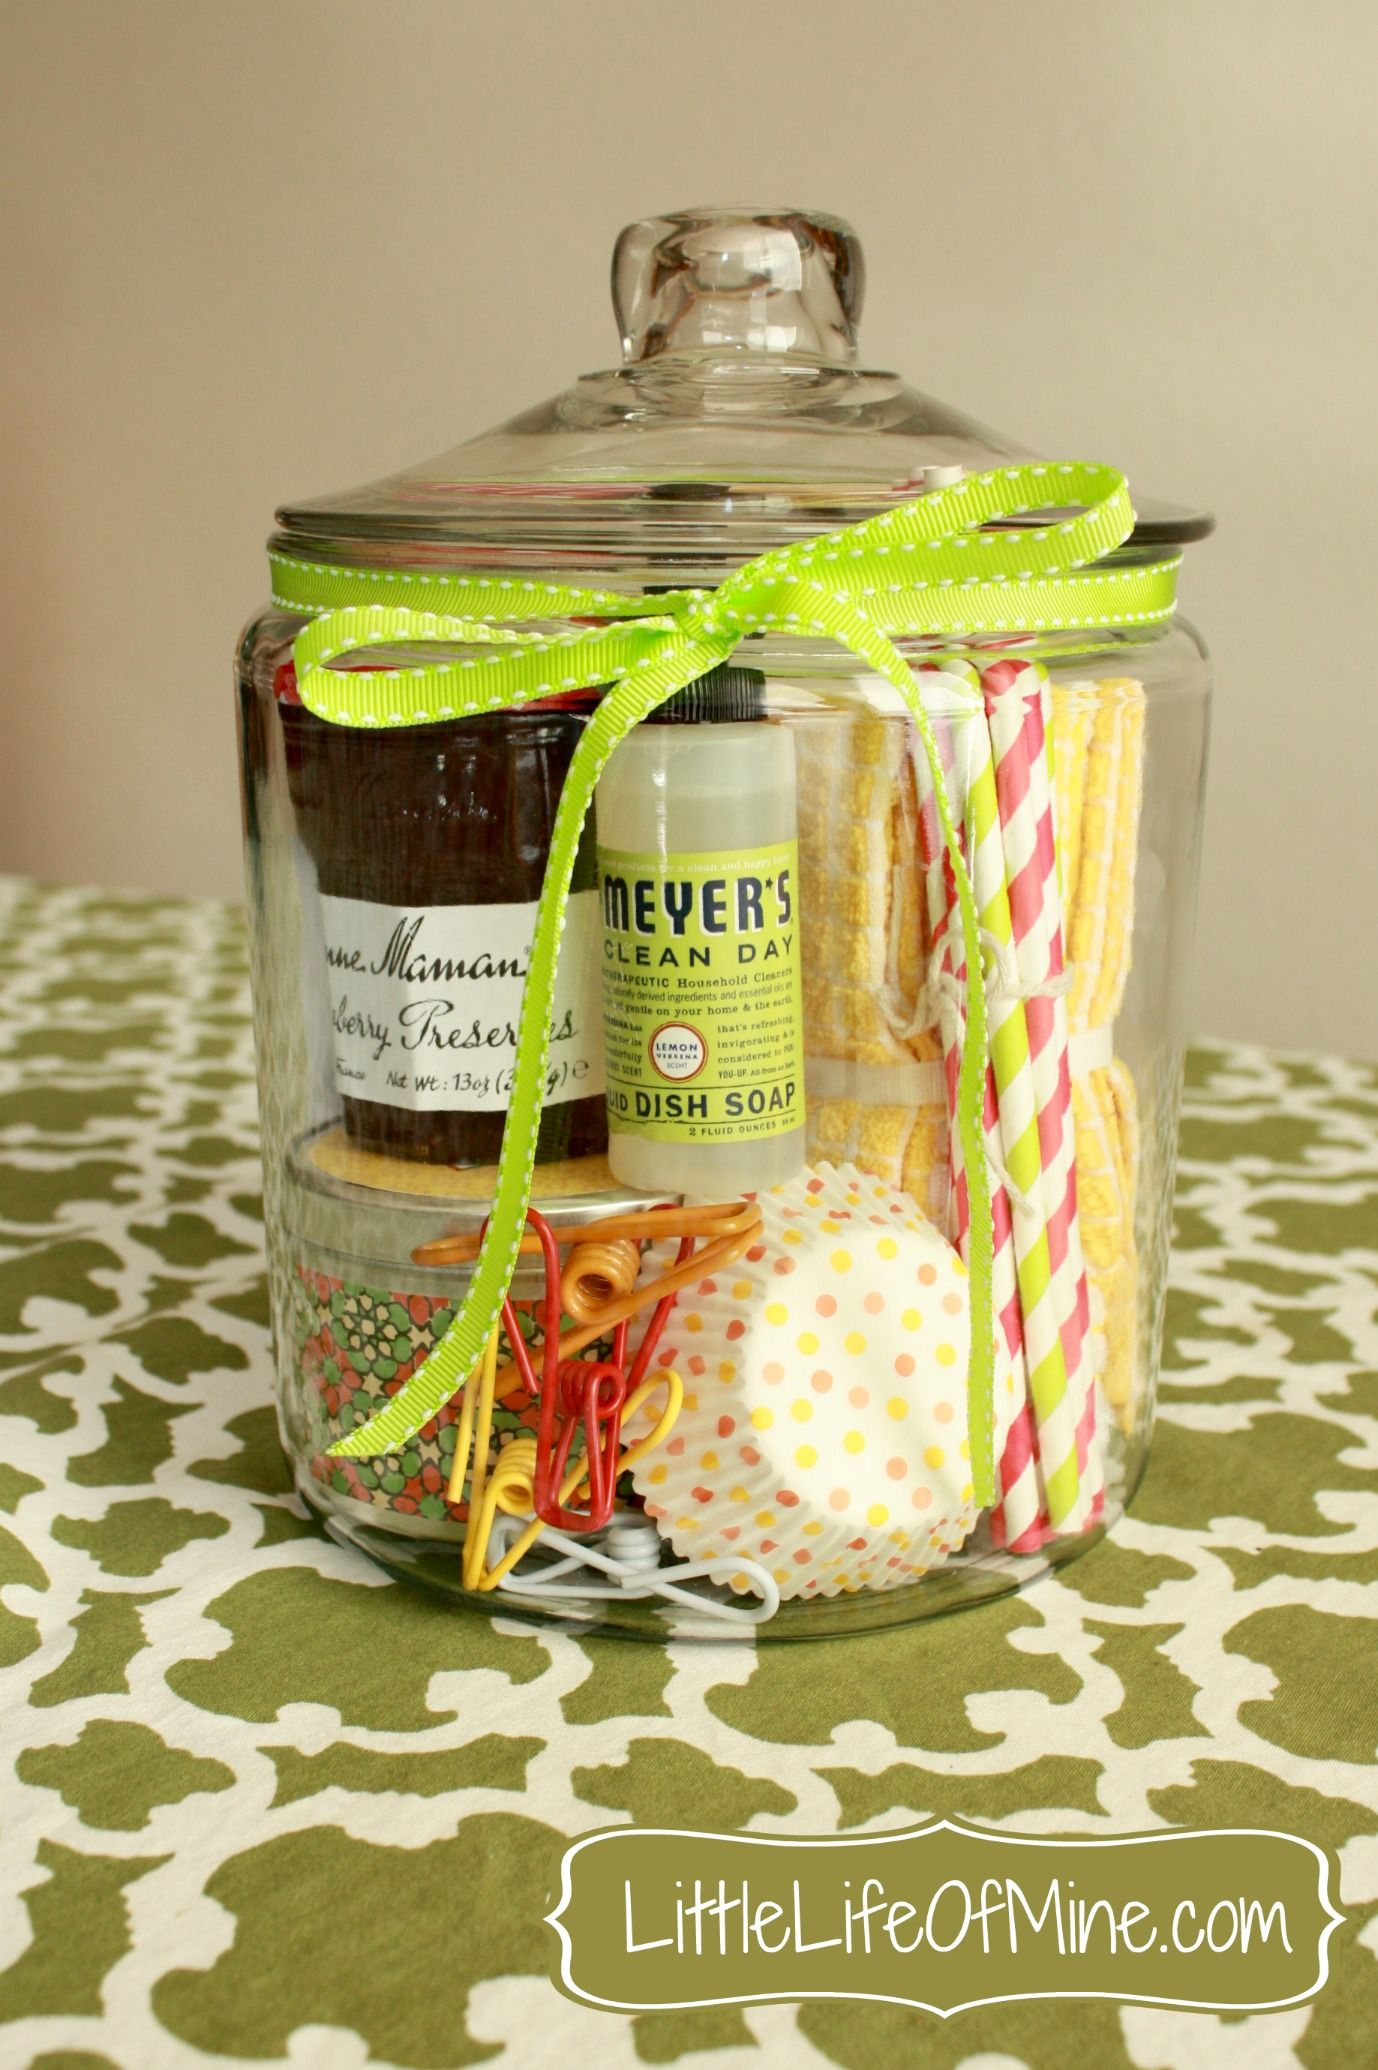 Housewarming Gift In A Jar This Would Work For So Many Situations Wedding Anniversary Birthday More Easy To Customize The Recipient With